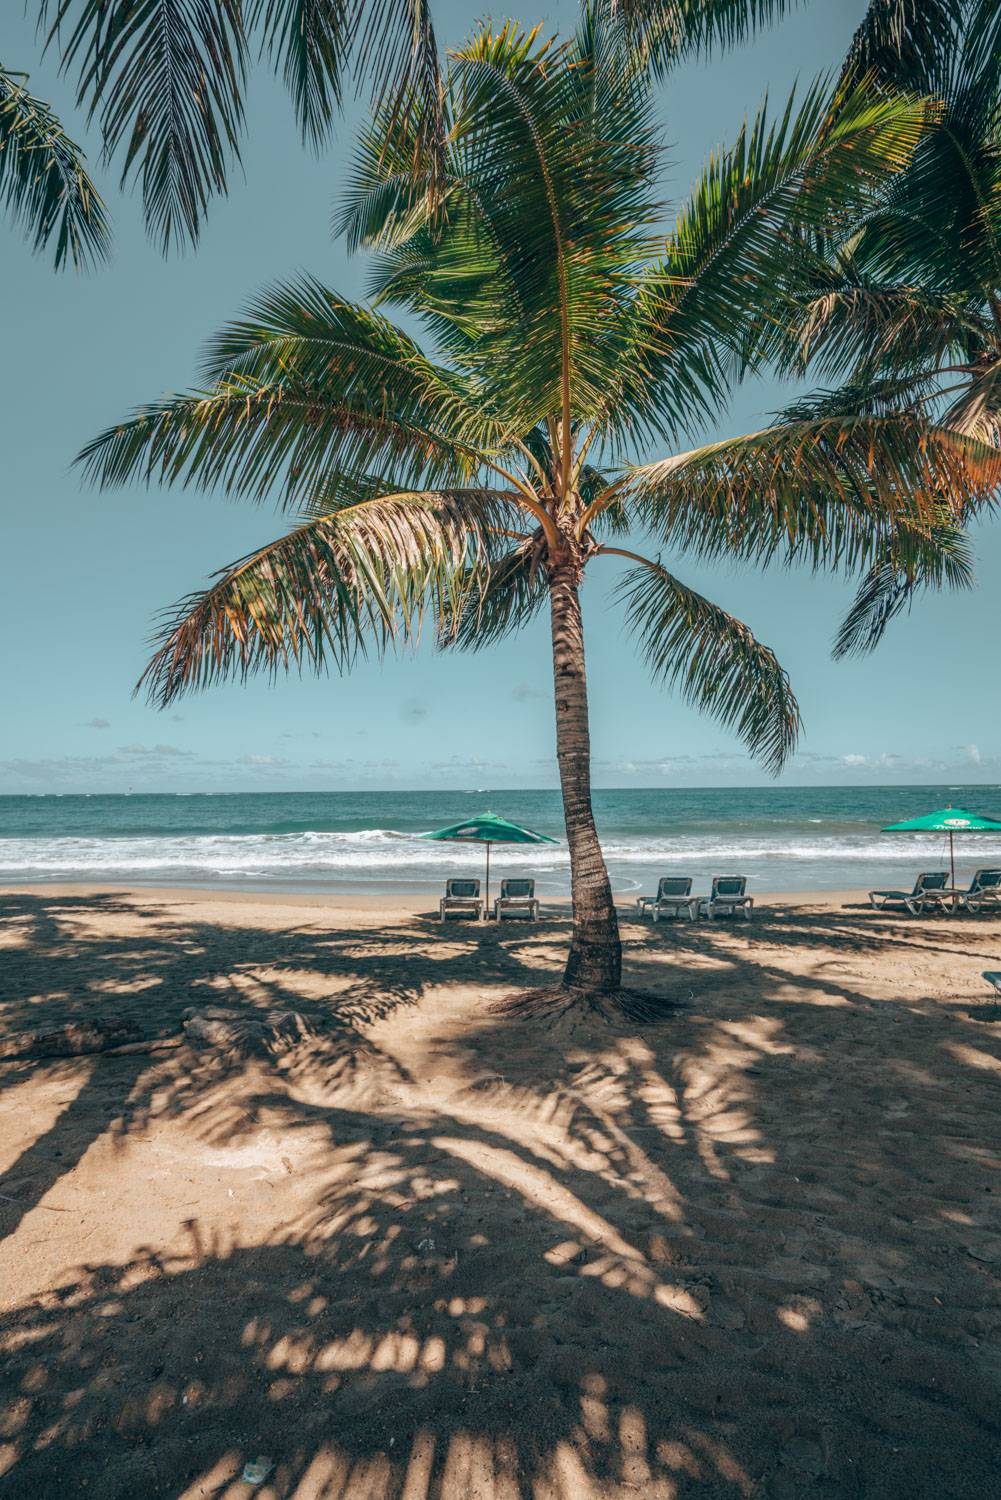 Looking for the best day trips from Puerto Plata to the best beaches in Dominican Republic? Well, we have you covered with a stop in Cabarete.